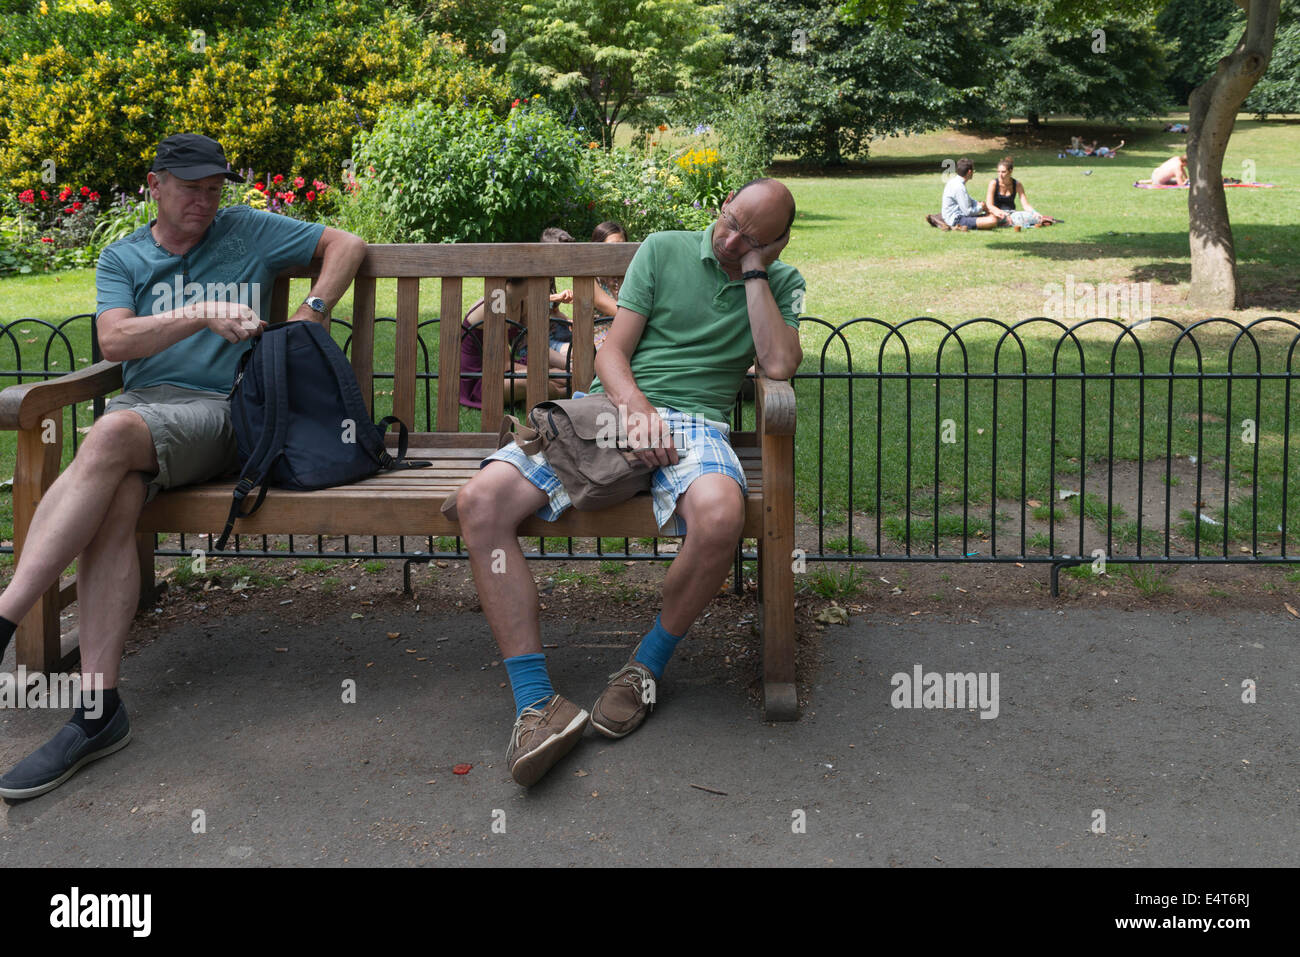 Londoners enjoying hot weather in the city - Stock Image